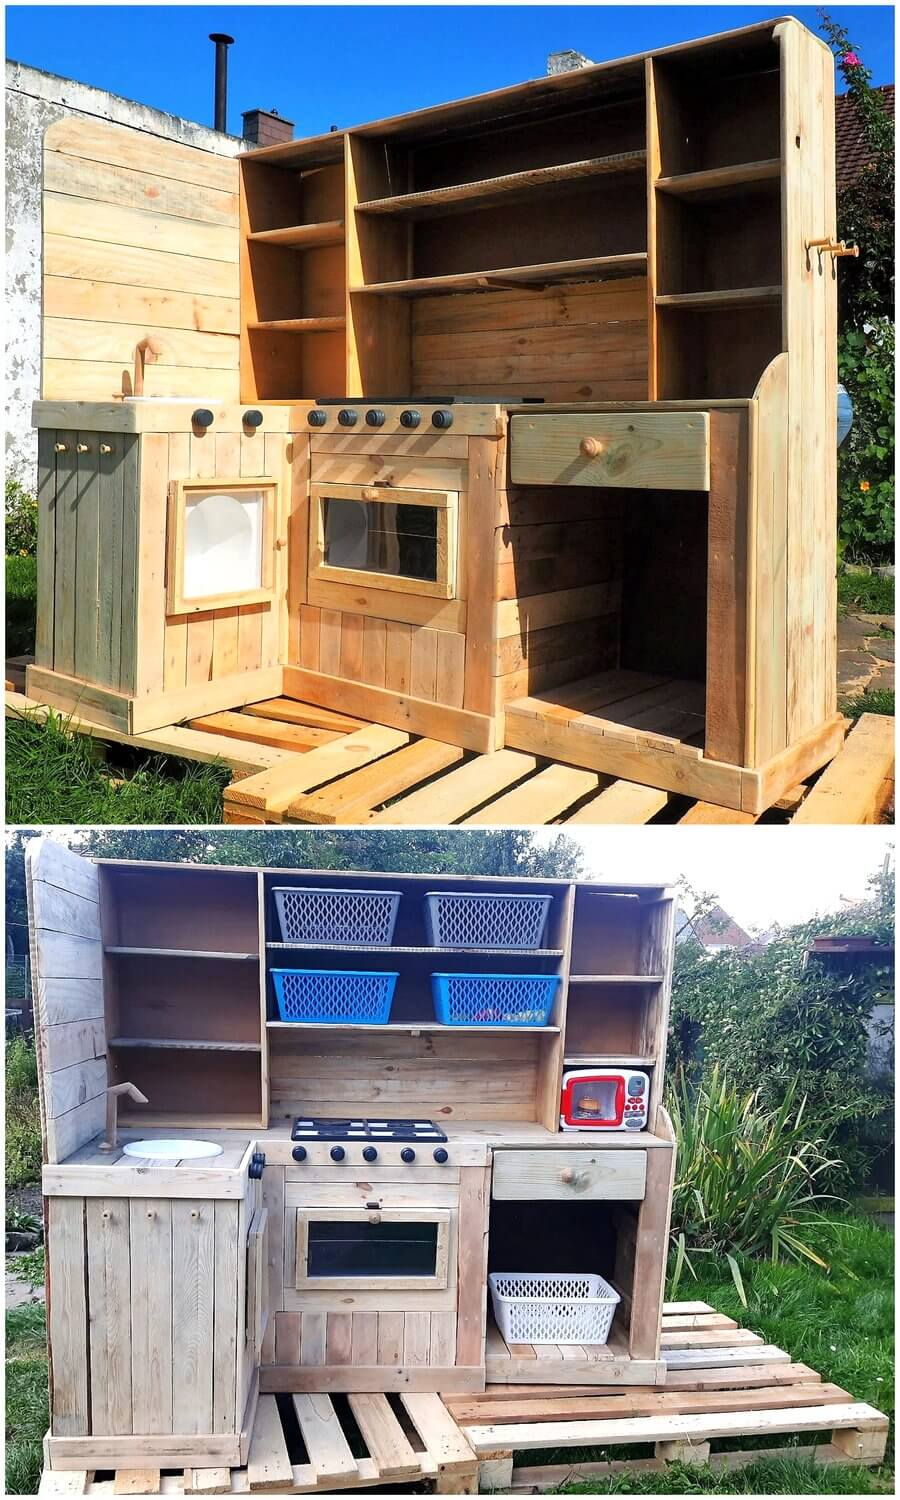 Kids Play Mud Kitchen Made with Pallets